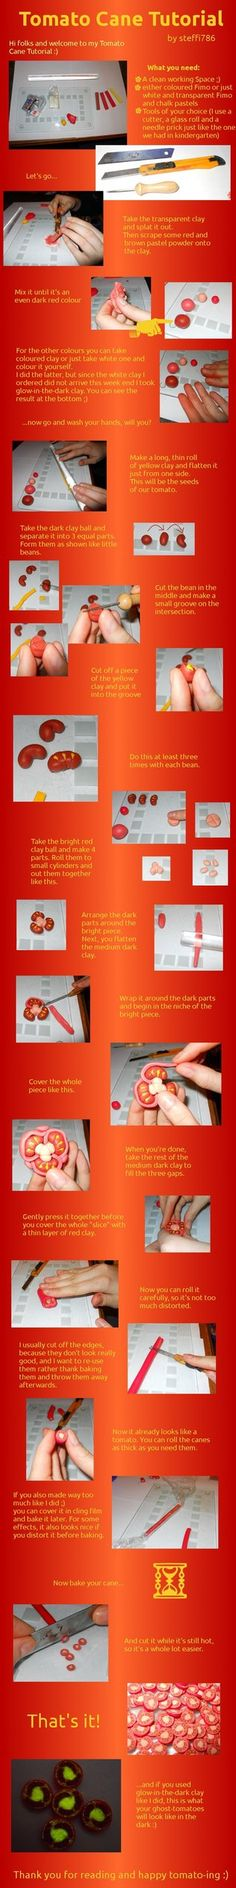 Tomato Cane Tutorial by ~steffi786 on deviantART